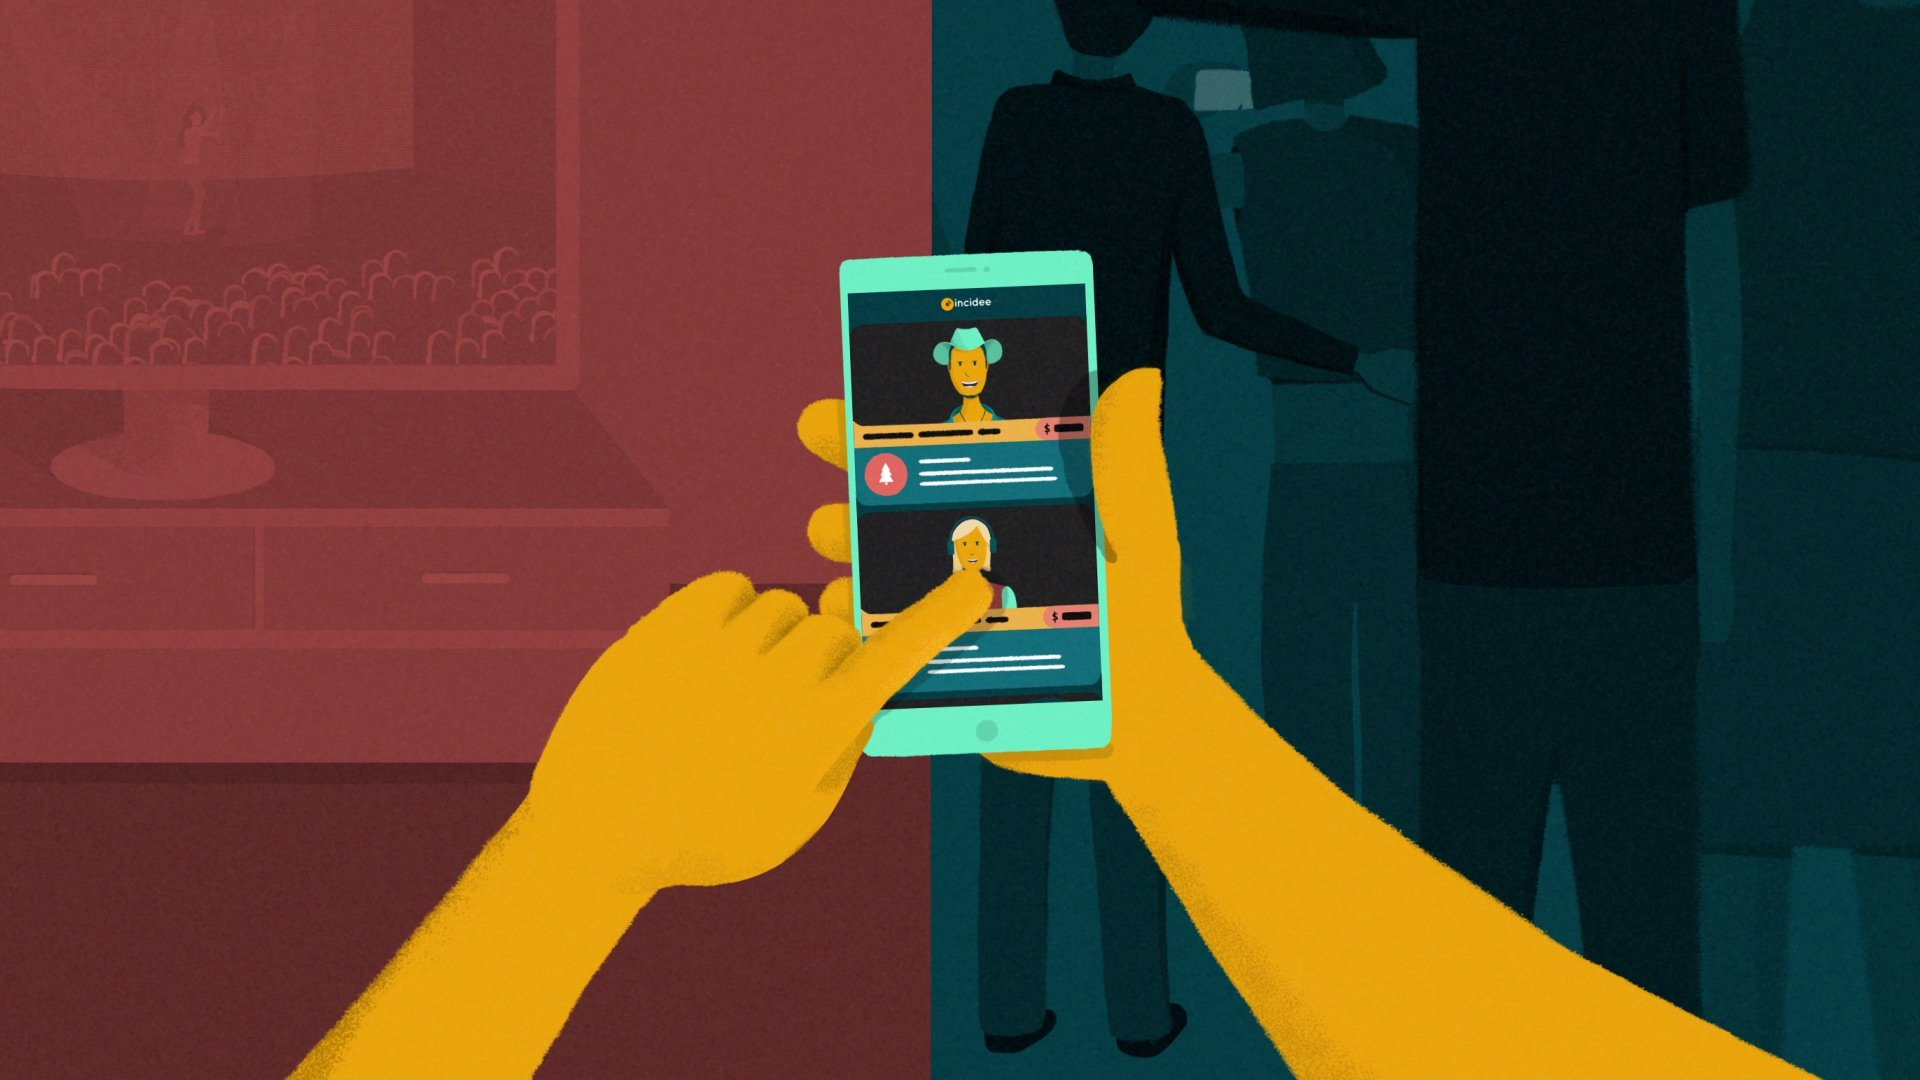 illustration for an explainer video animation for the Incidee app. It shows someone using their cellphone